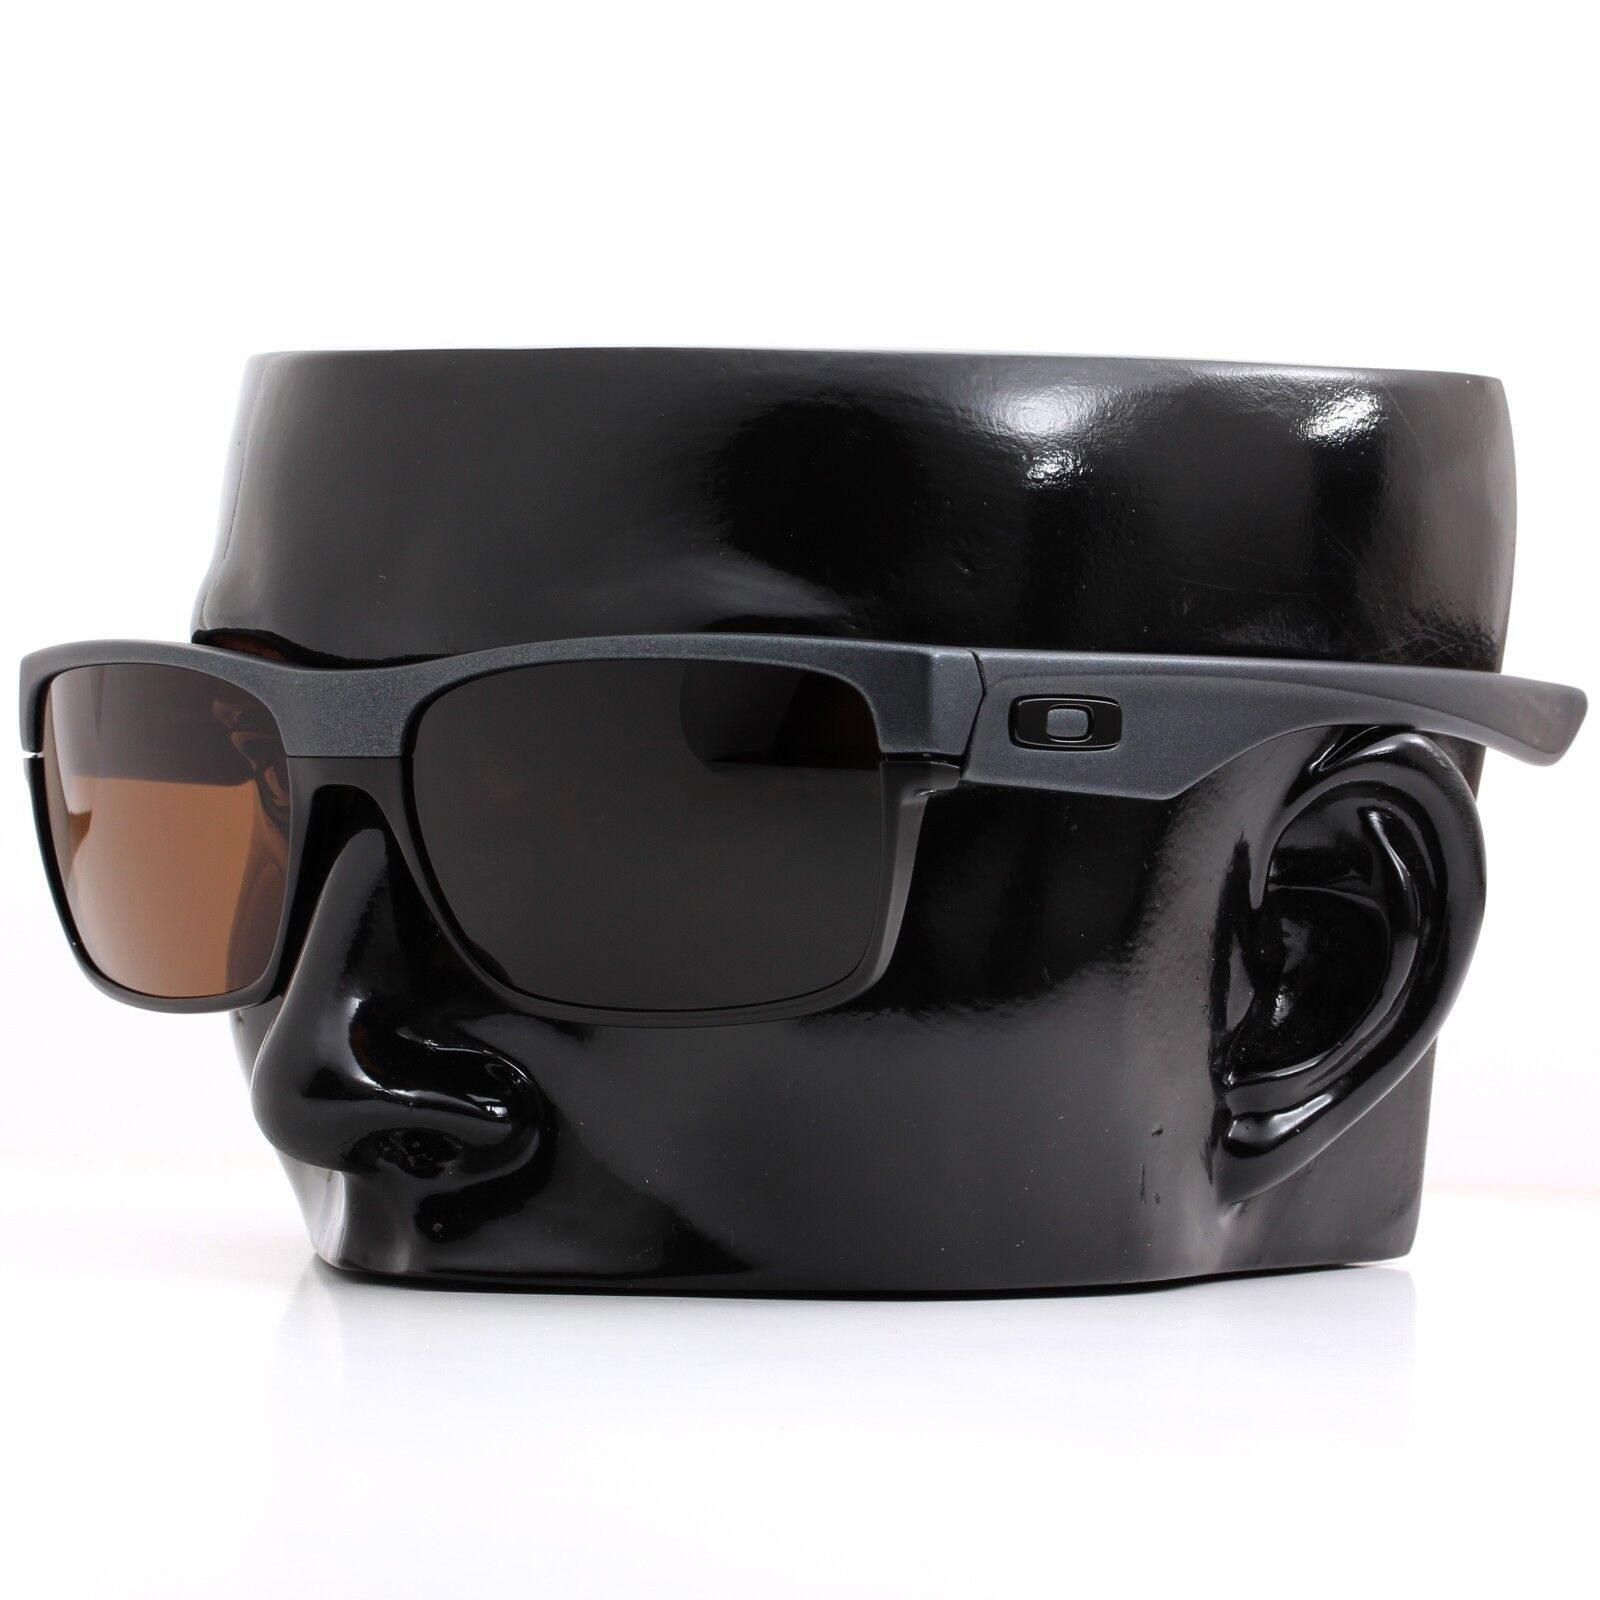 0d277743a98 Buy Polarized Ikon Replacement Lenses for Oakley TwoFace Sunglasses ...